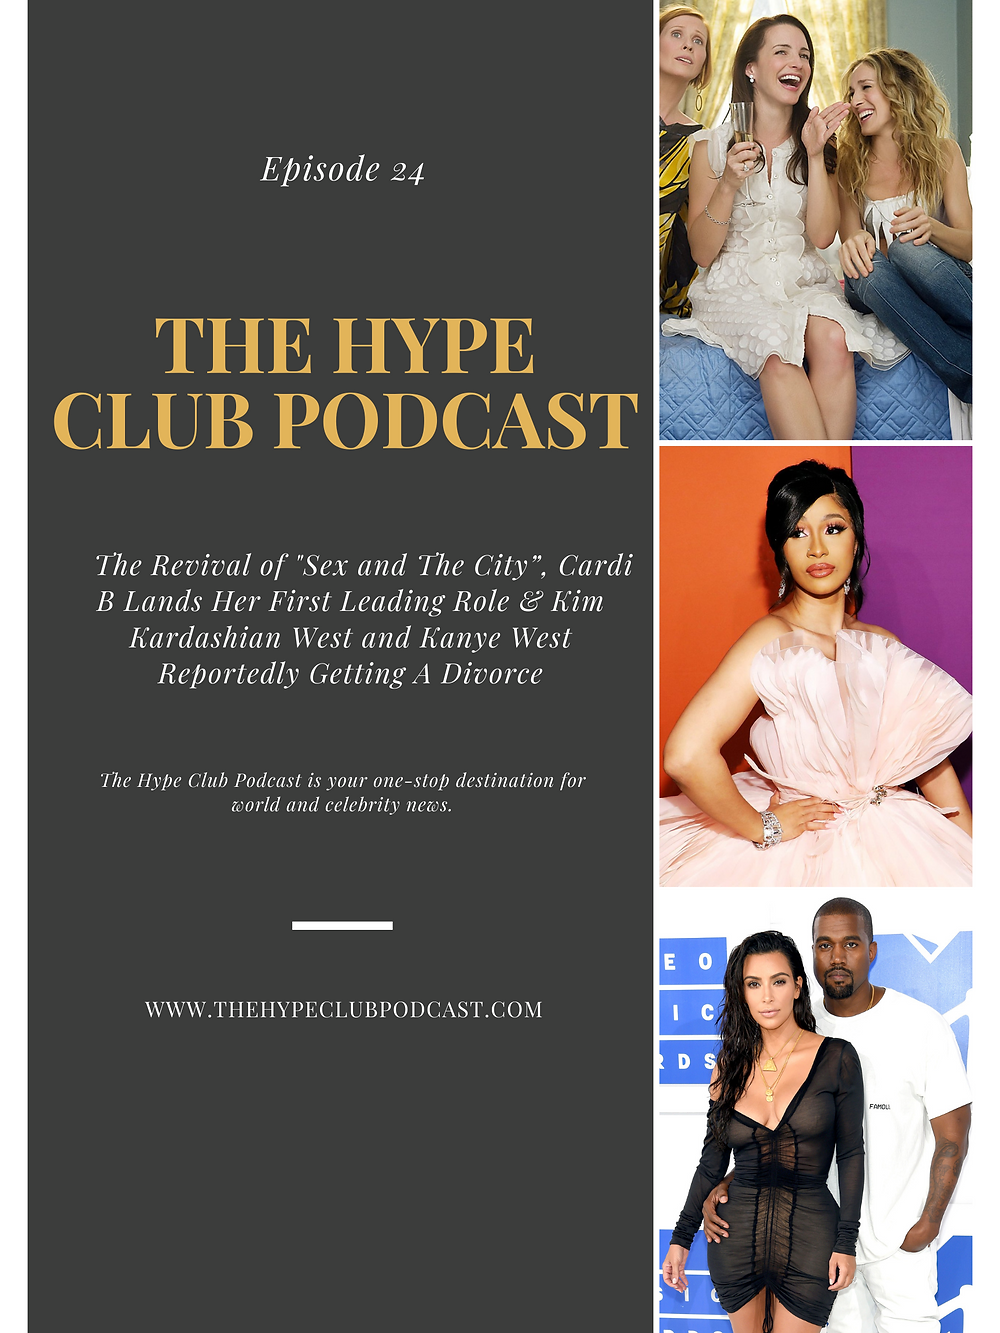 The Hype Club Podcast